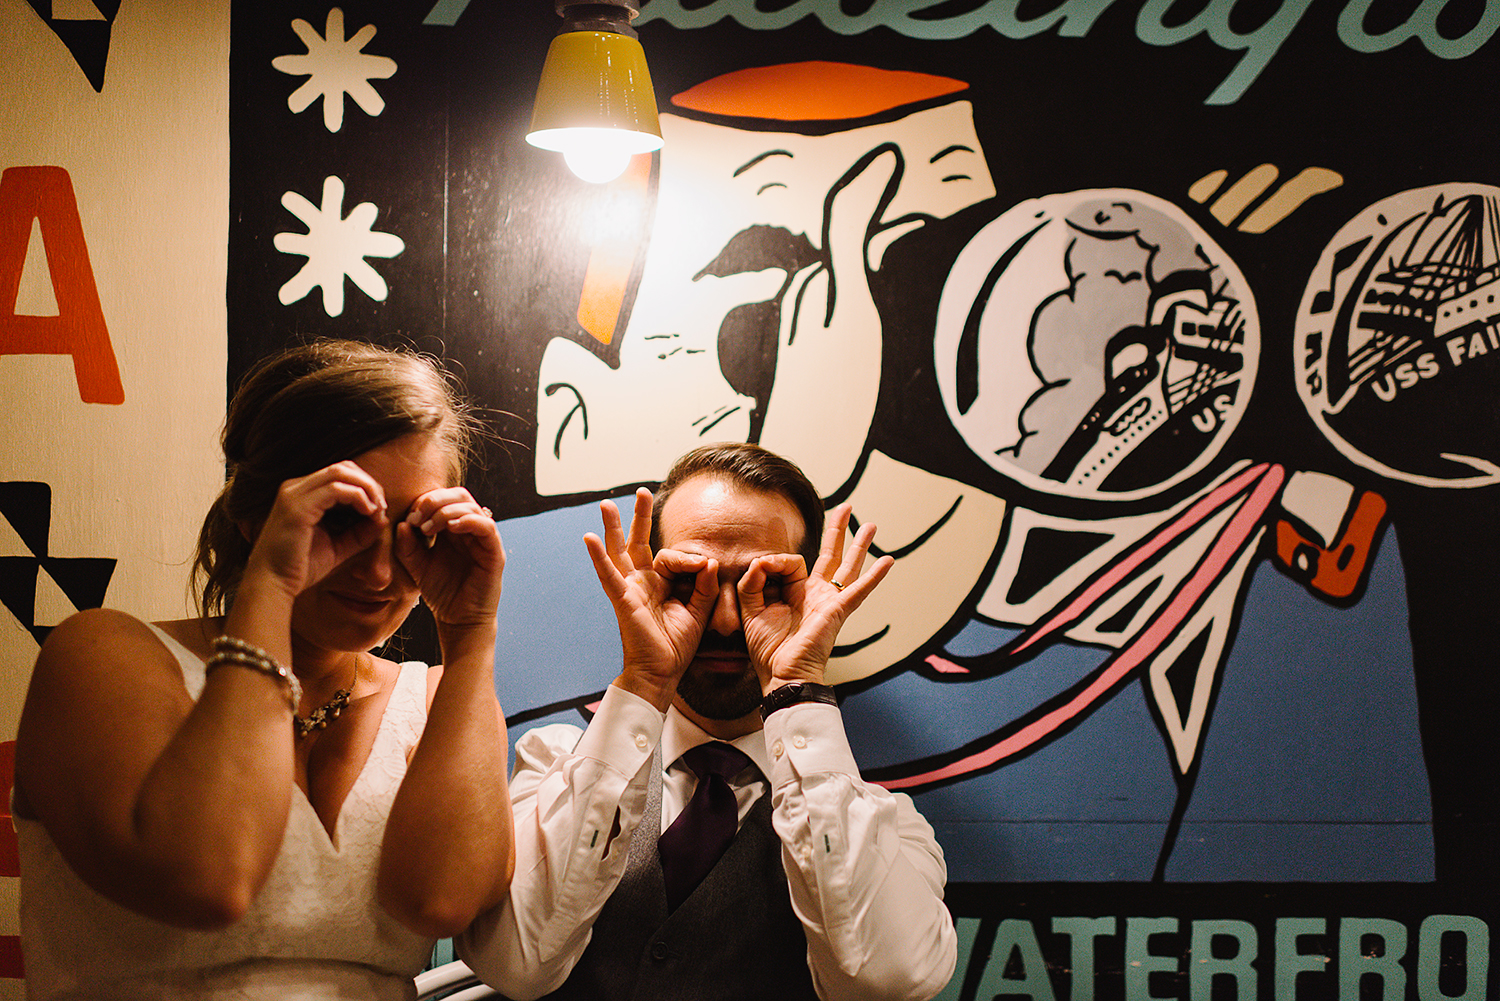 Prince-Edward-County-Wedding-Photographer-Drake-Hotel-Vintage-Wedding-Venue-Bride-and-Groom-funny-portrait.jpg